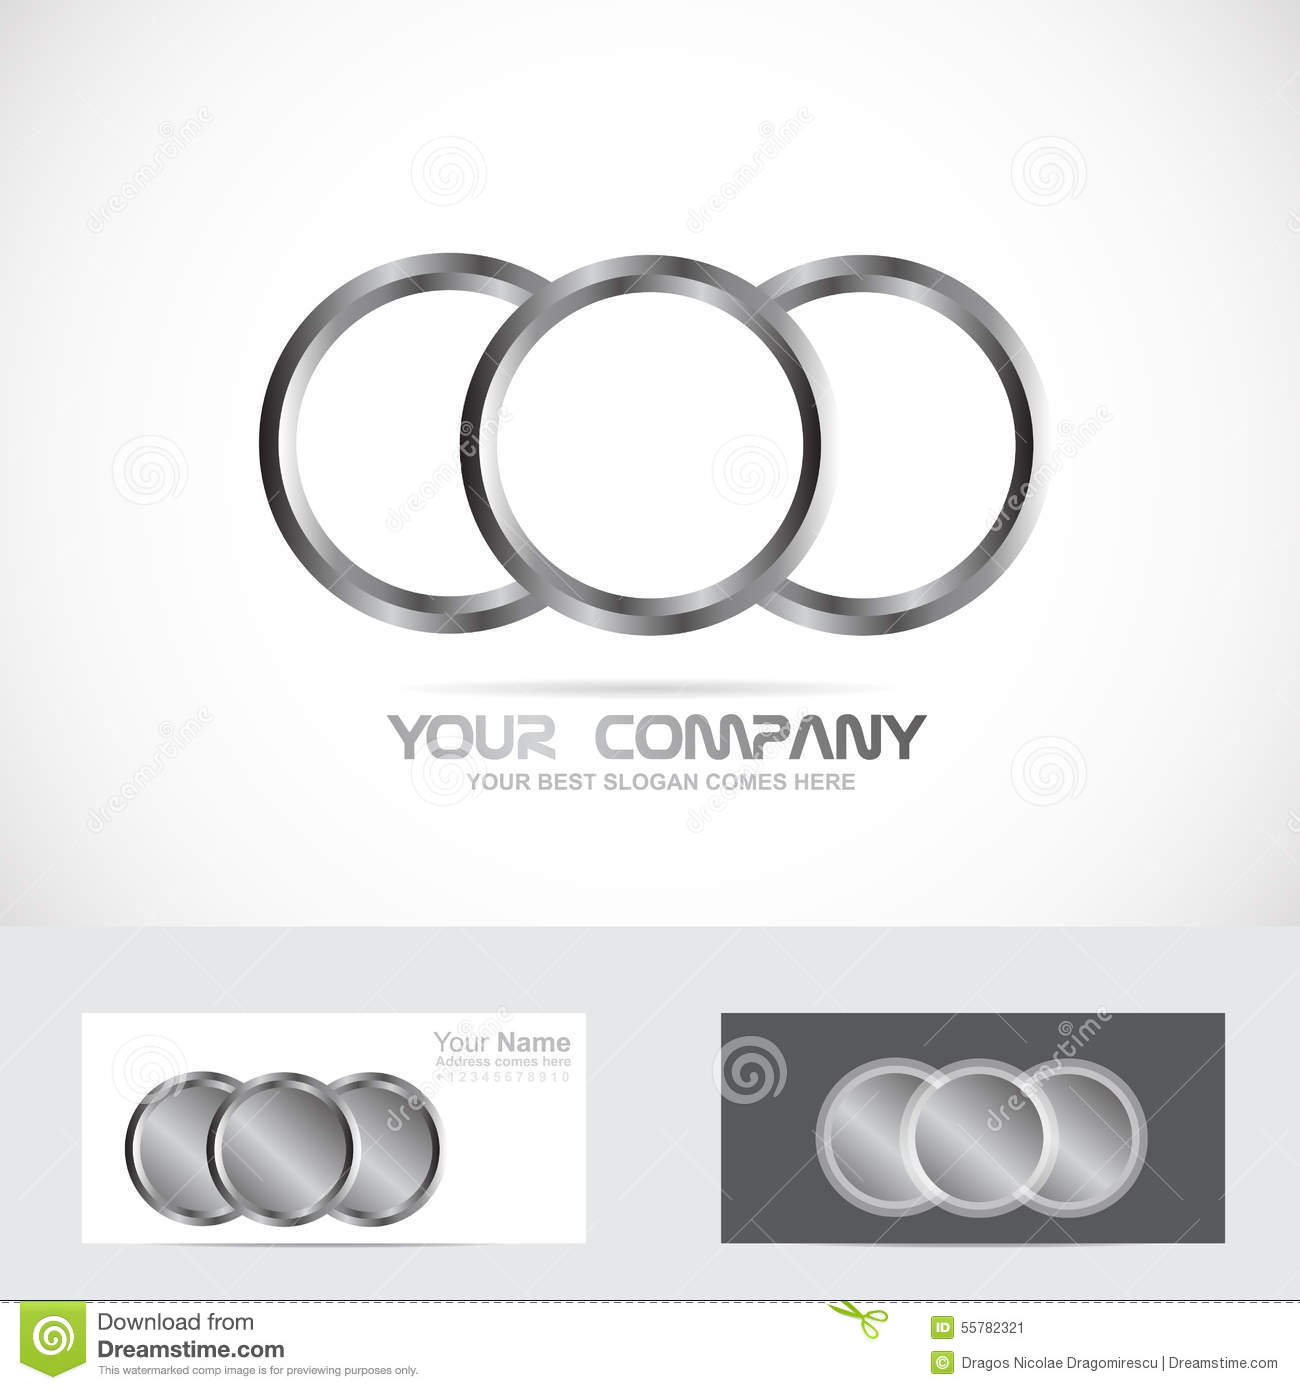 rings logo com vectors logos vector template free download seeklogo